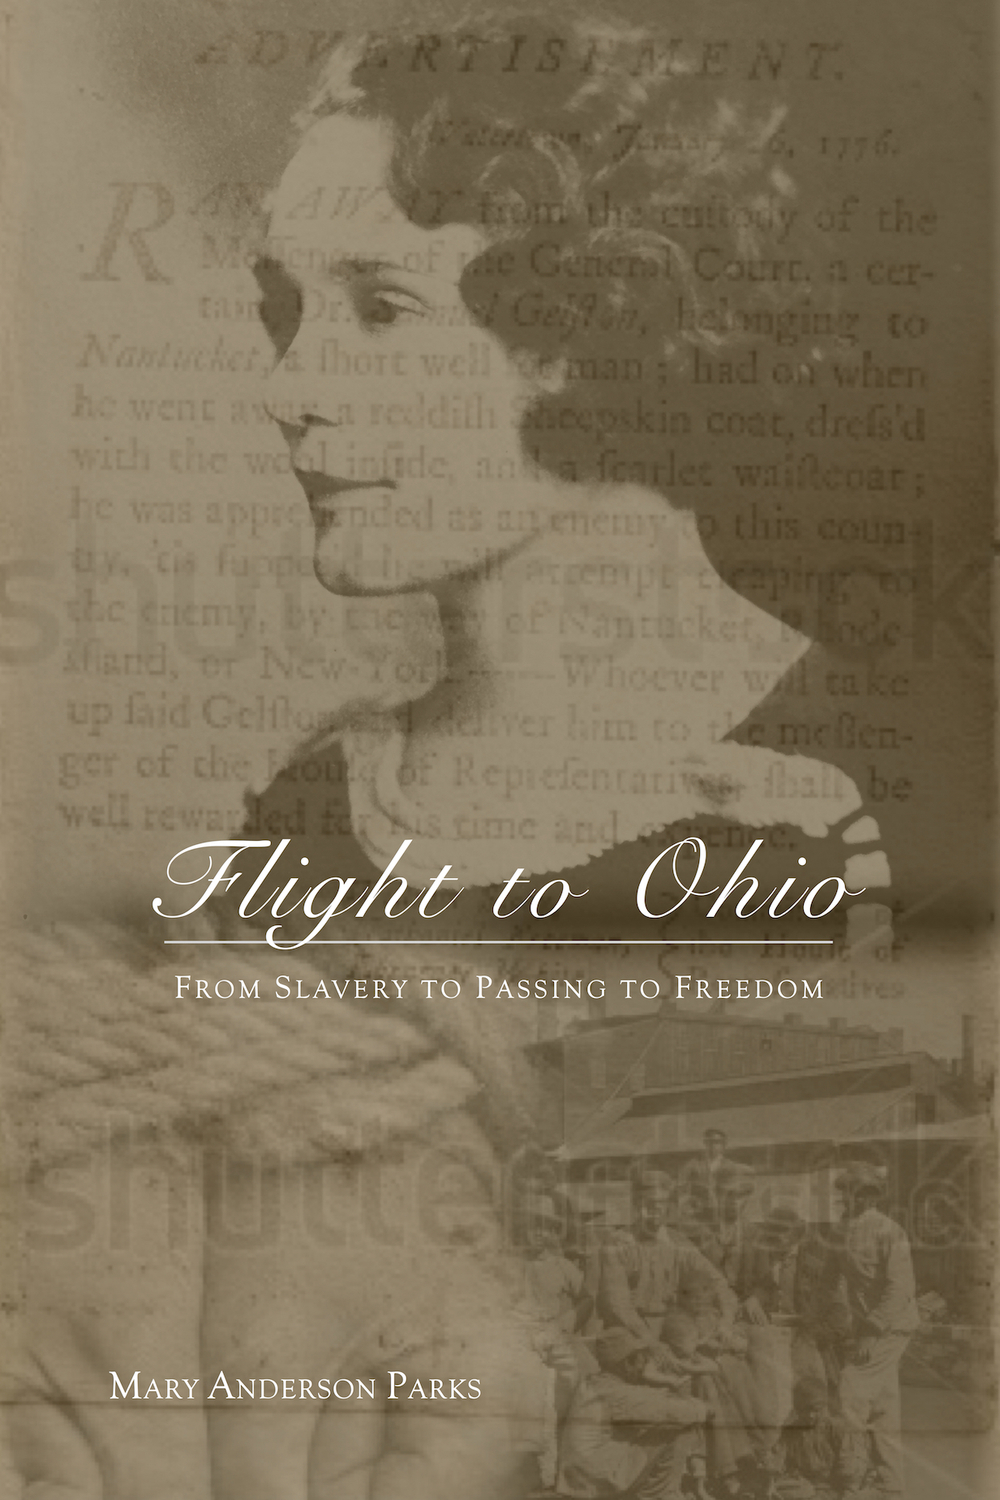 Flight to Ohio - FrontCover - B.jpg